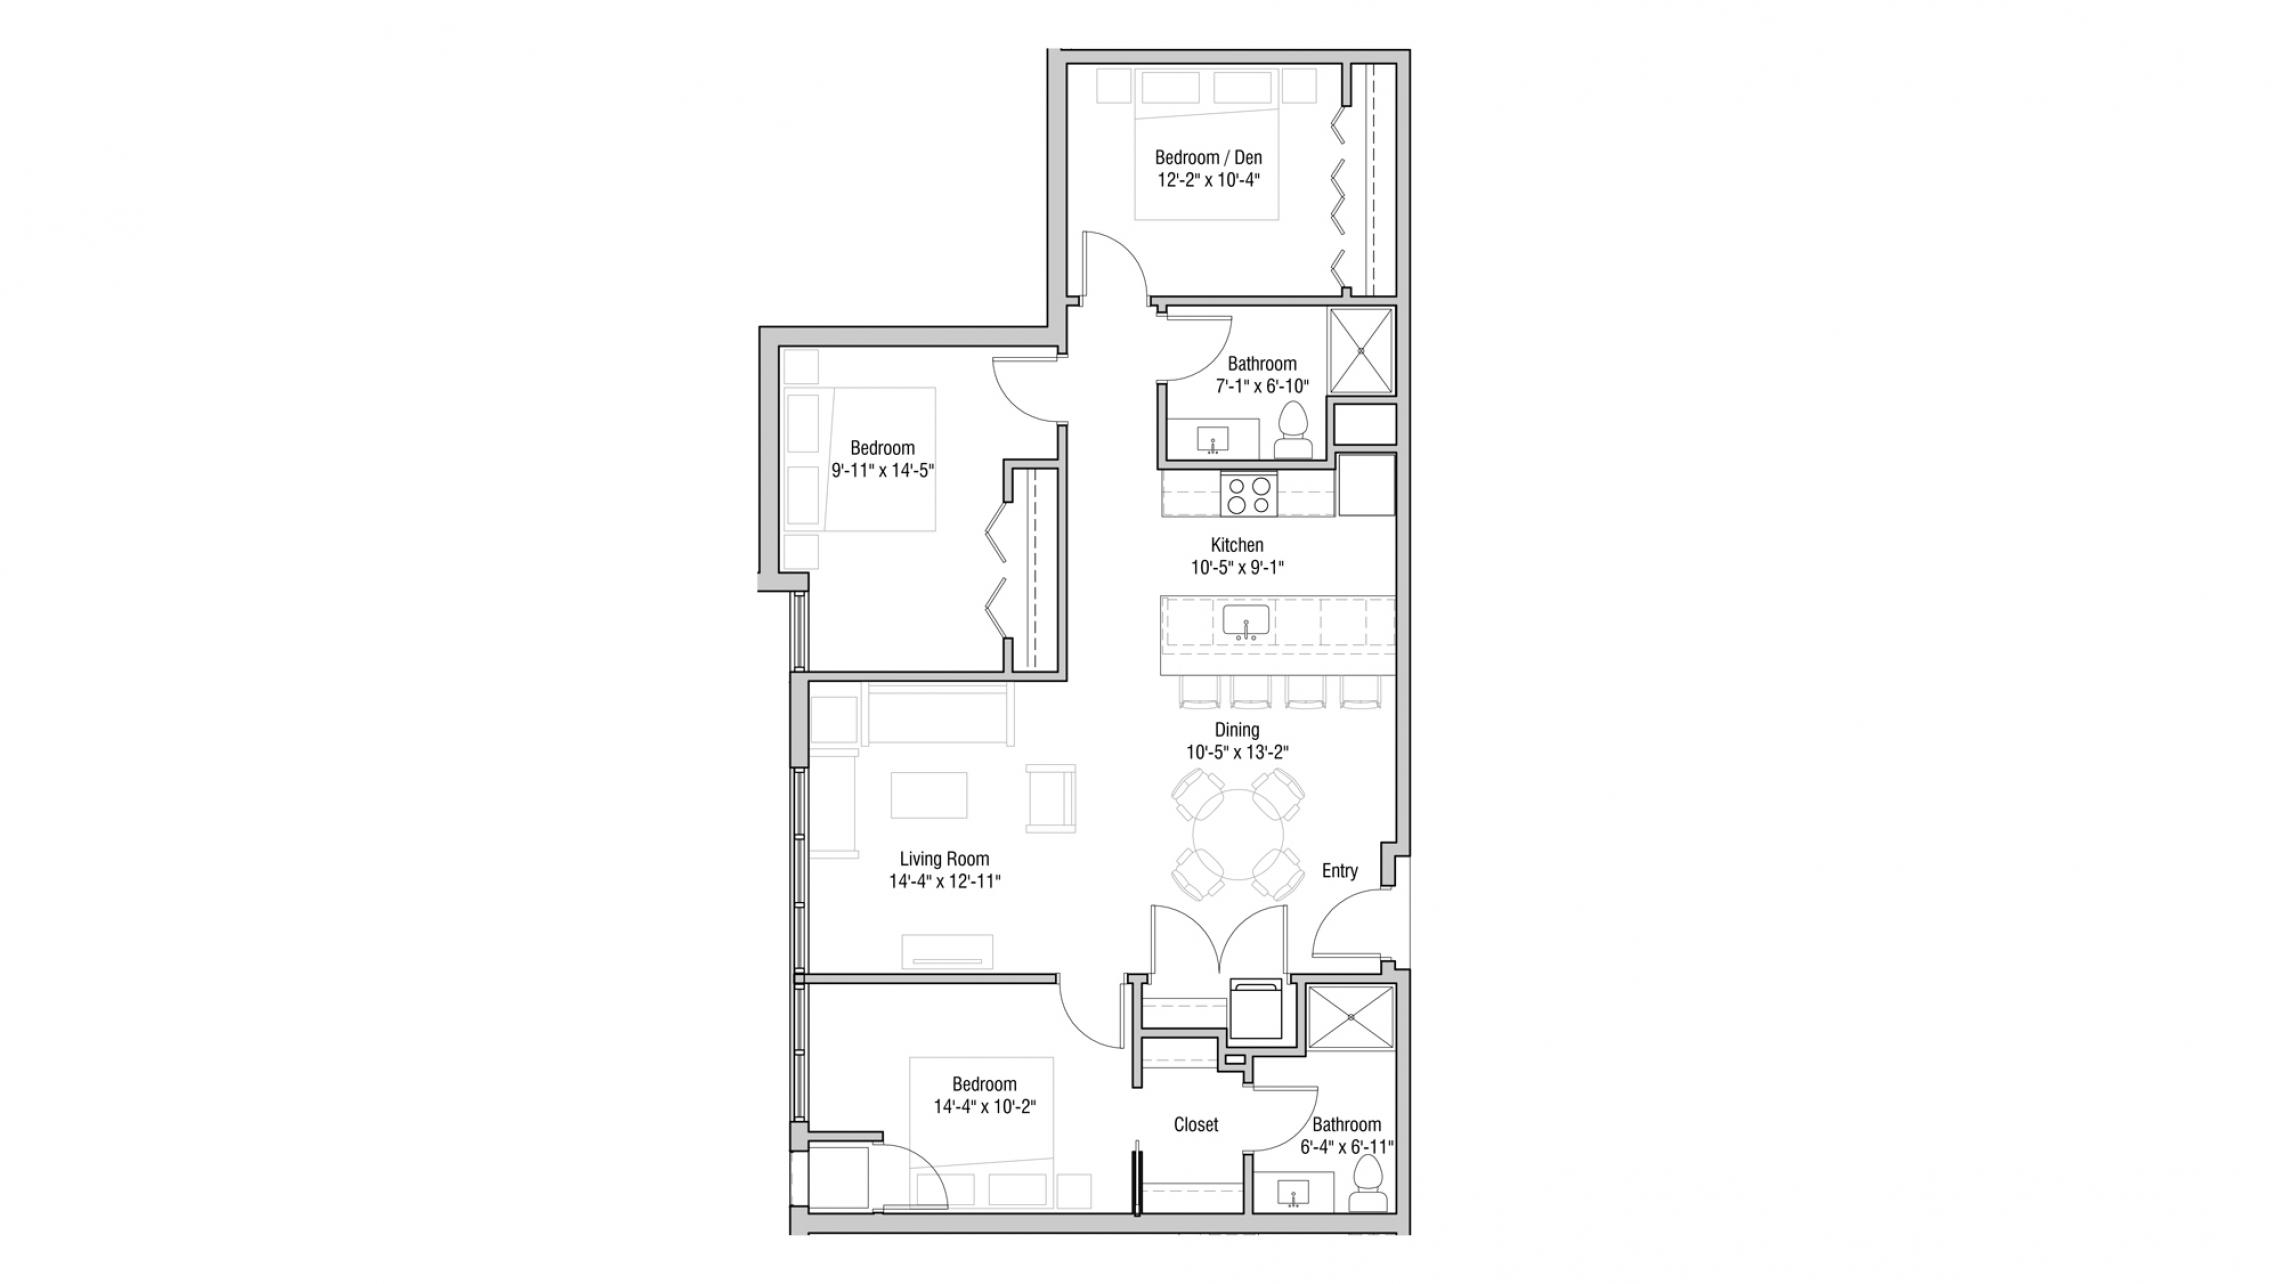 ULI Quarter Row 210 - Two Bedroom, Two Bathroom